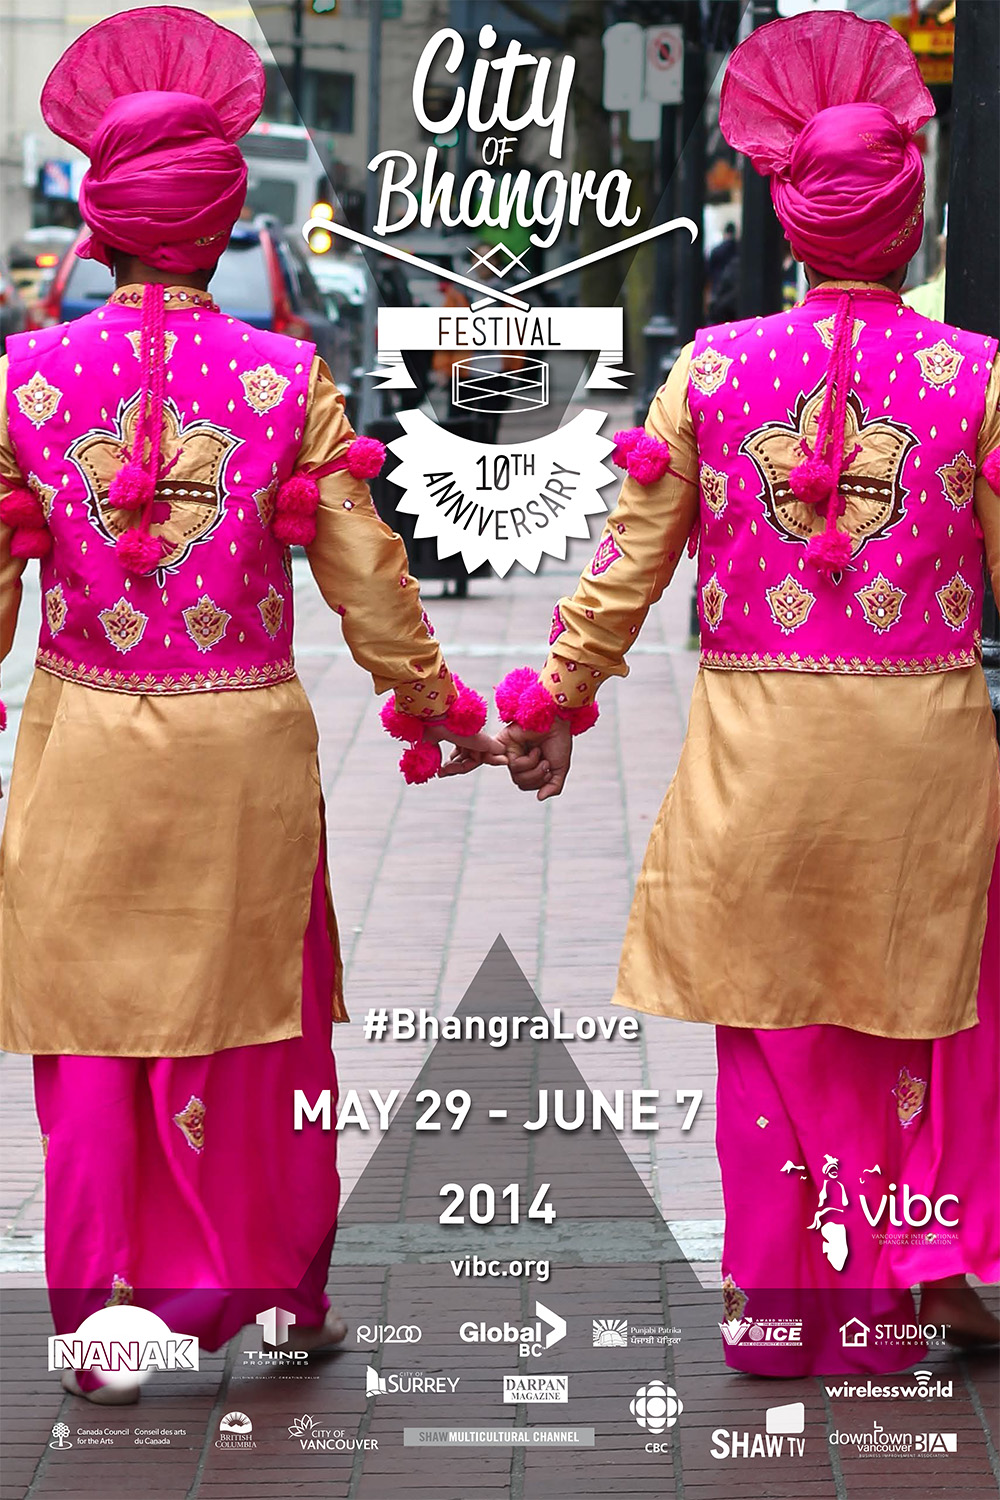 City-of-Bhangra-poster-20141.jpg